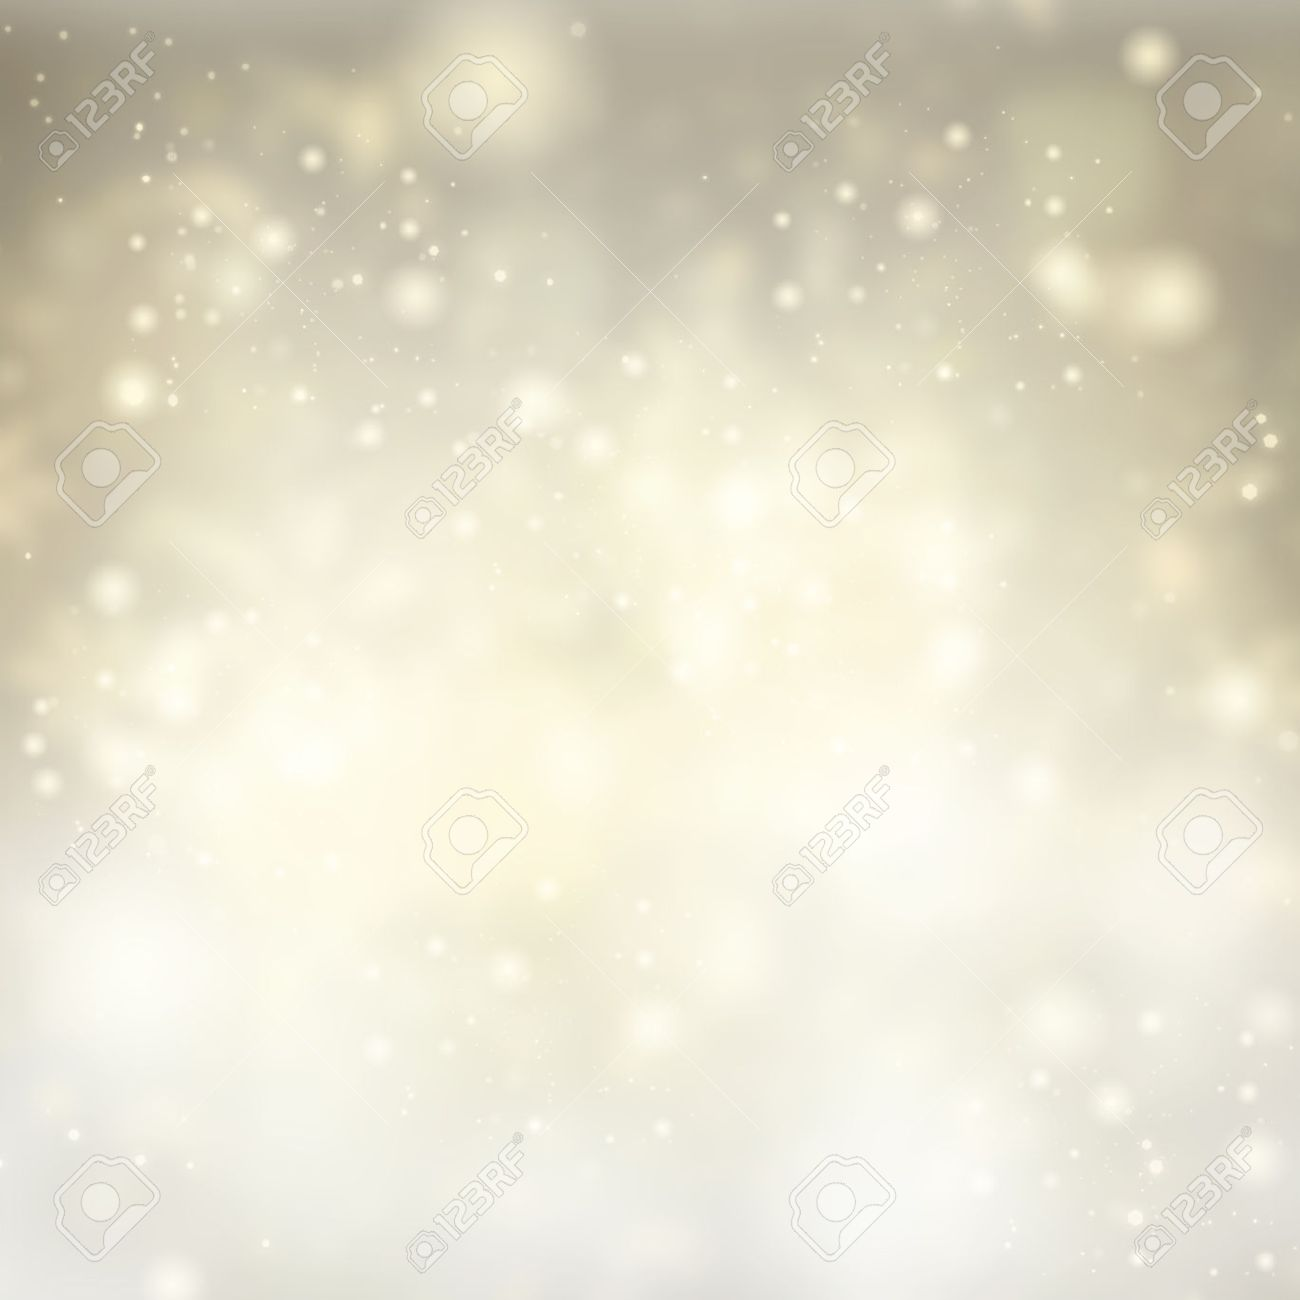 chrismas silver background with snow and bright sparkles - 48343424